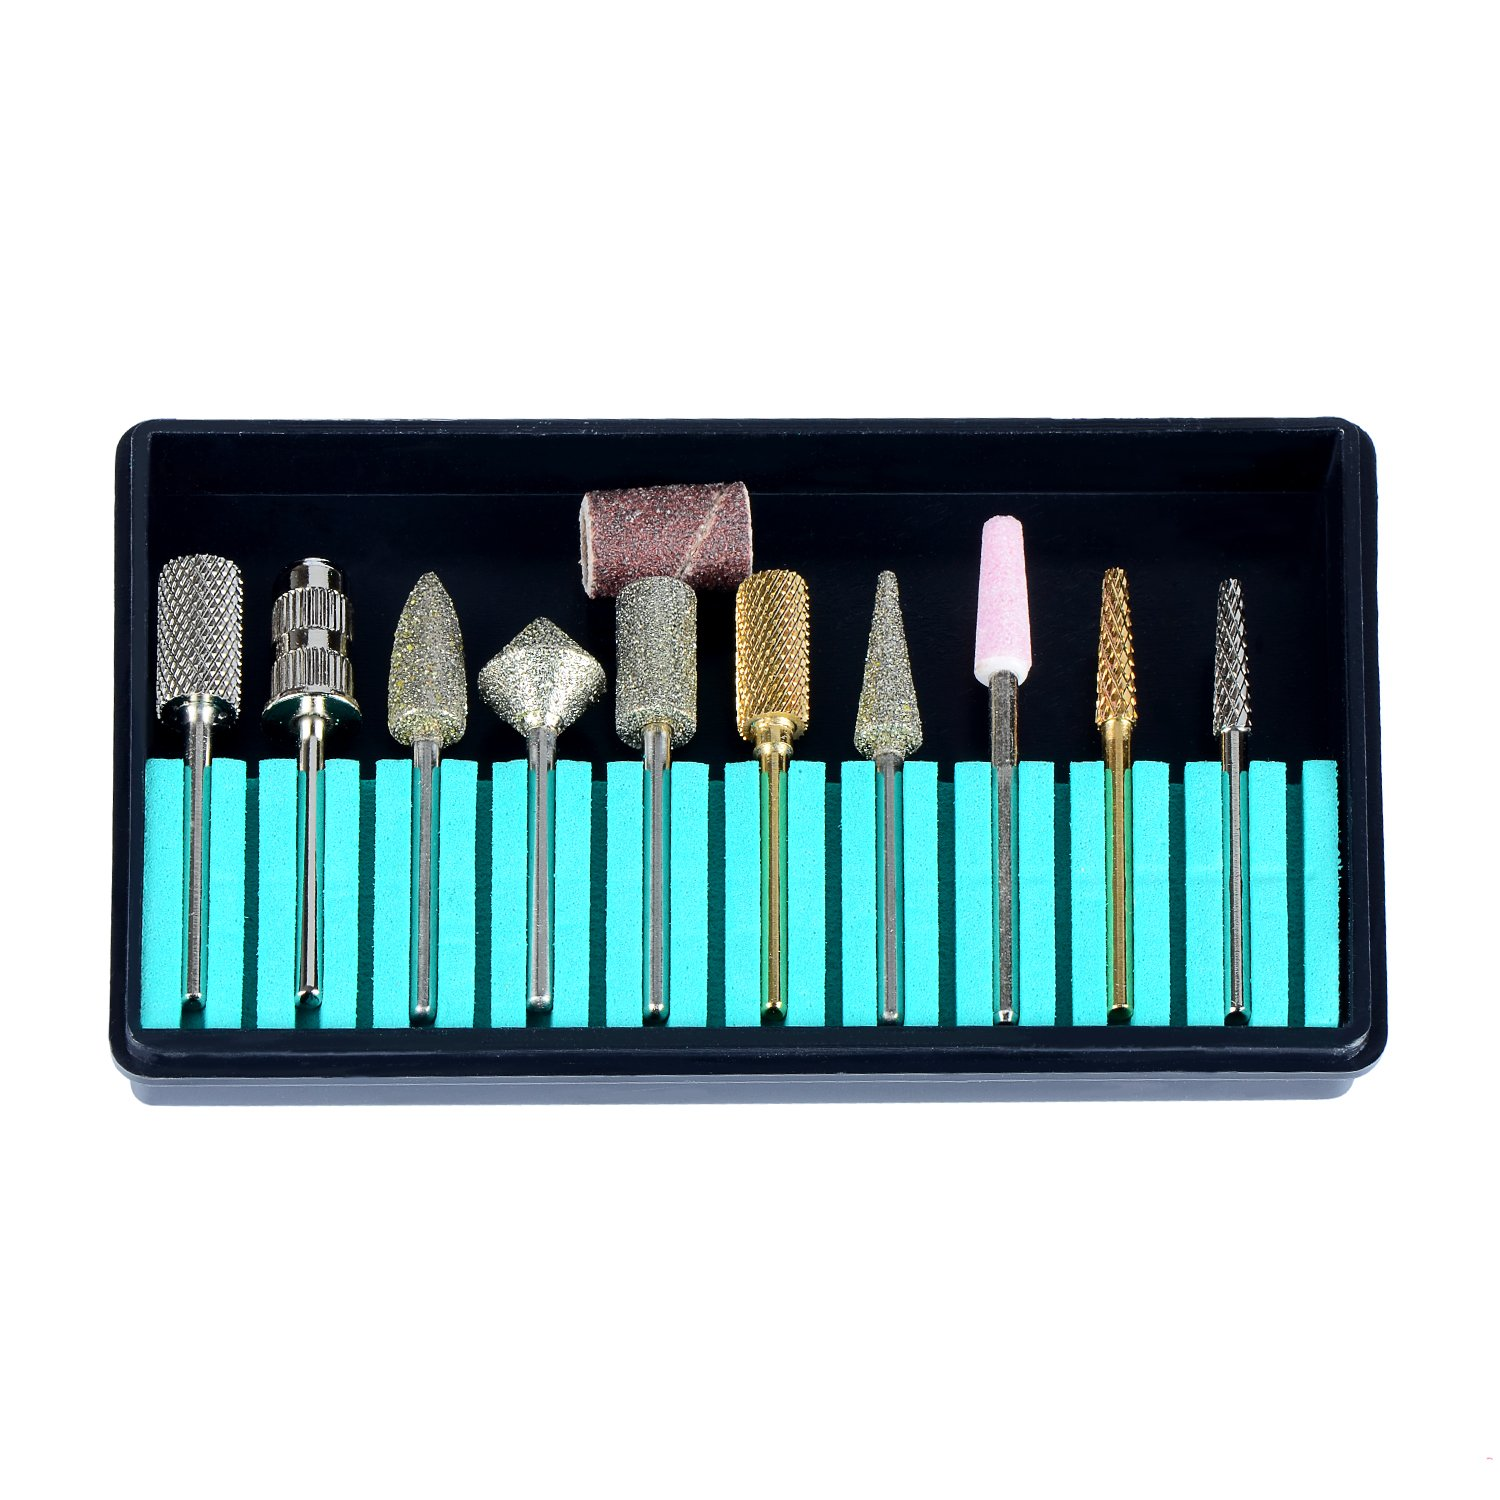 SpeTool Nail Art Drill Bits Tools Kit 3/32'' For Manicure Pedicure 10Pcs/Pack Assorted